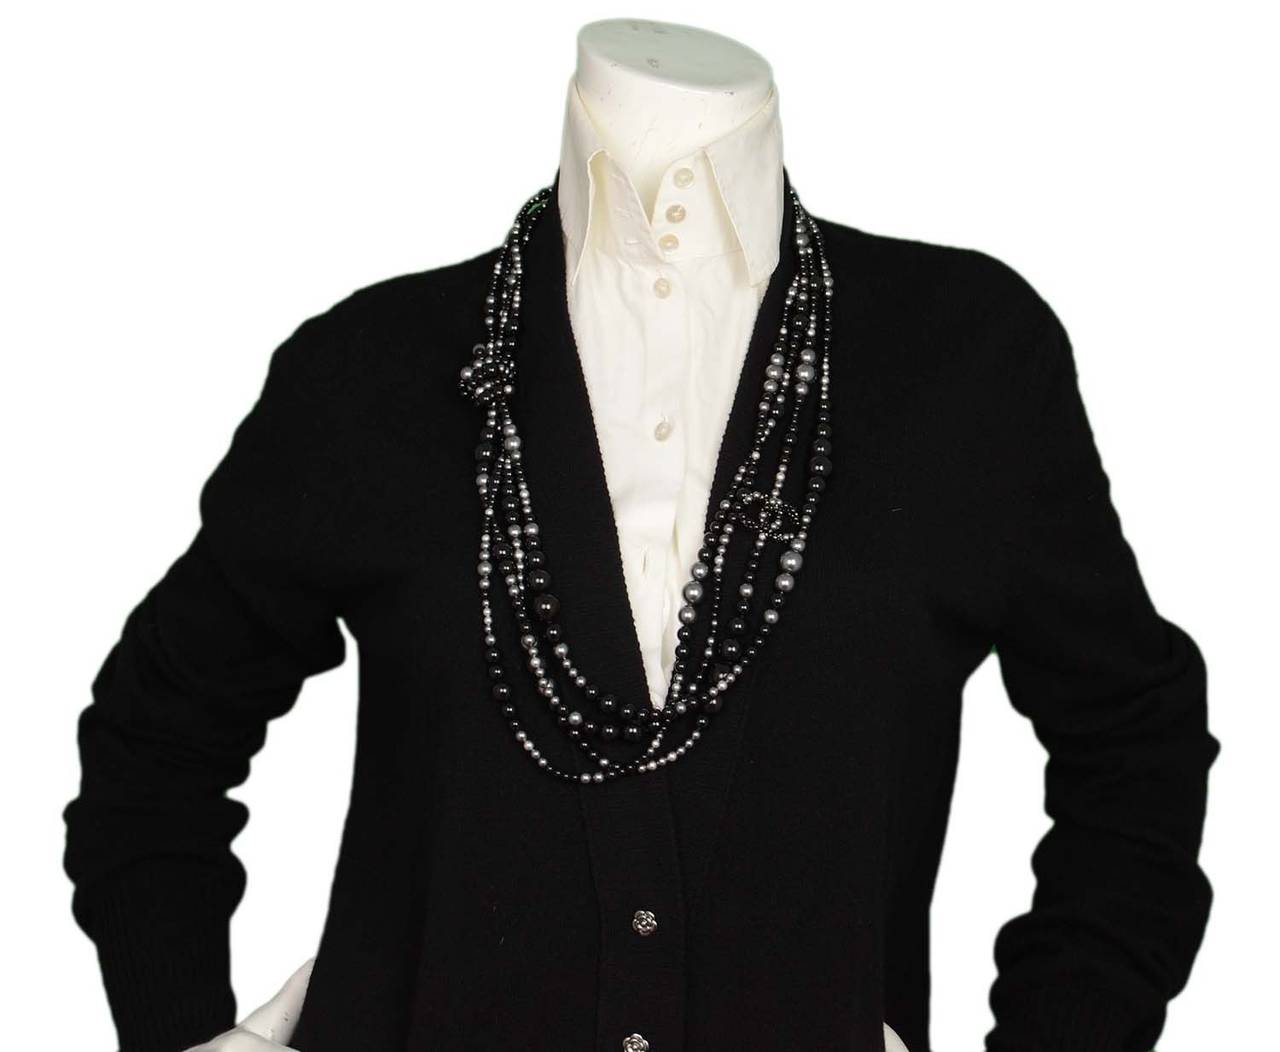 CHANEL 2014 Black & Grey Multi-Strand faux Pearl CC Necklace rt. $3,000 8